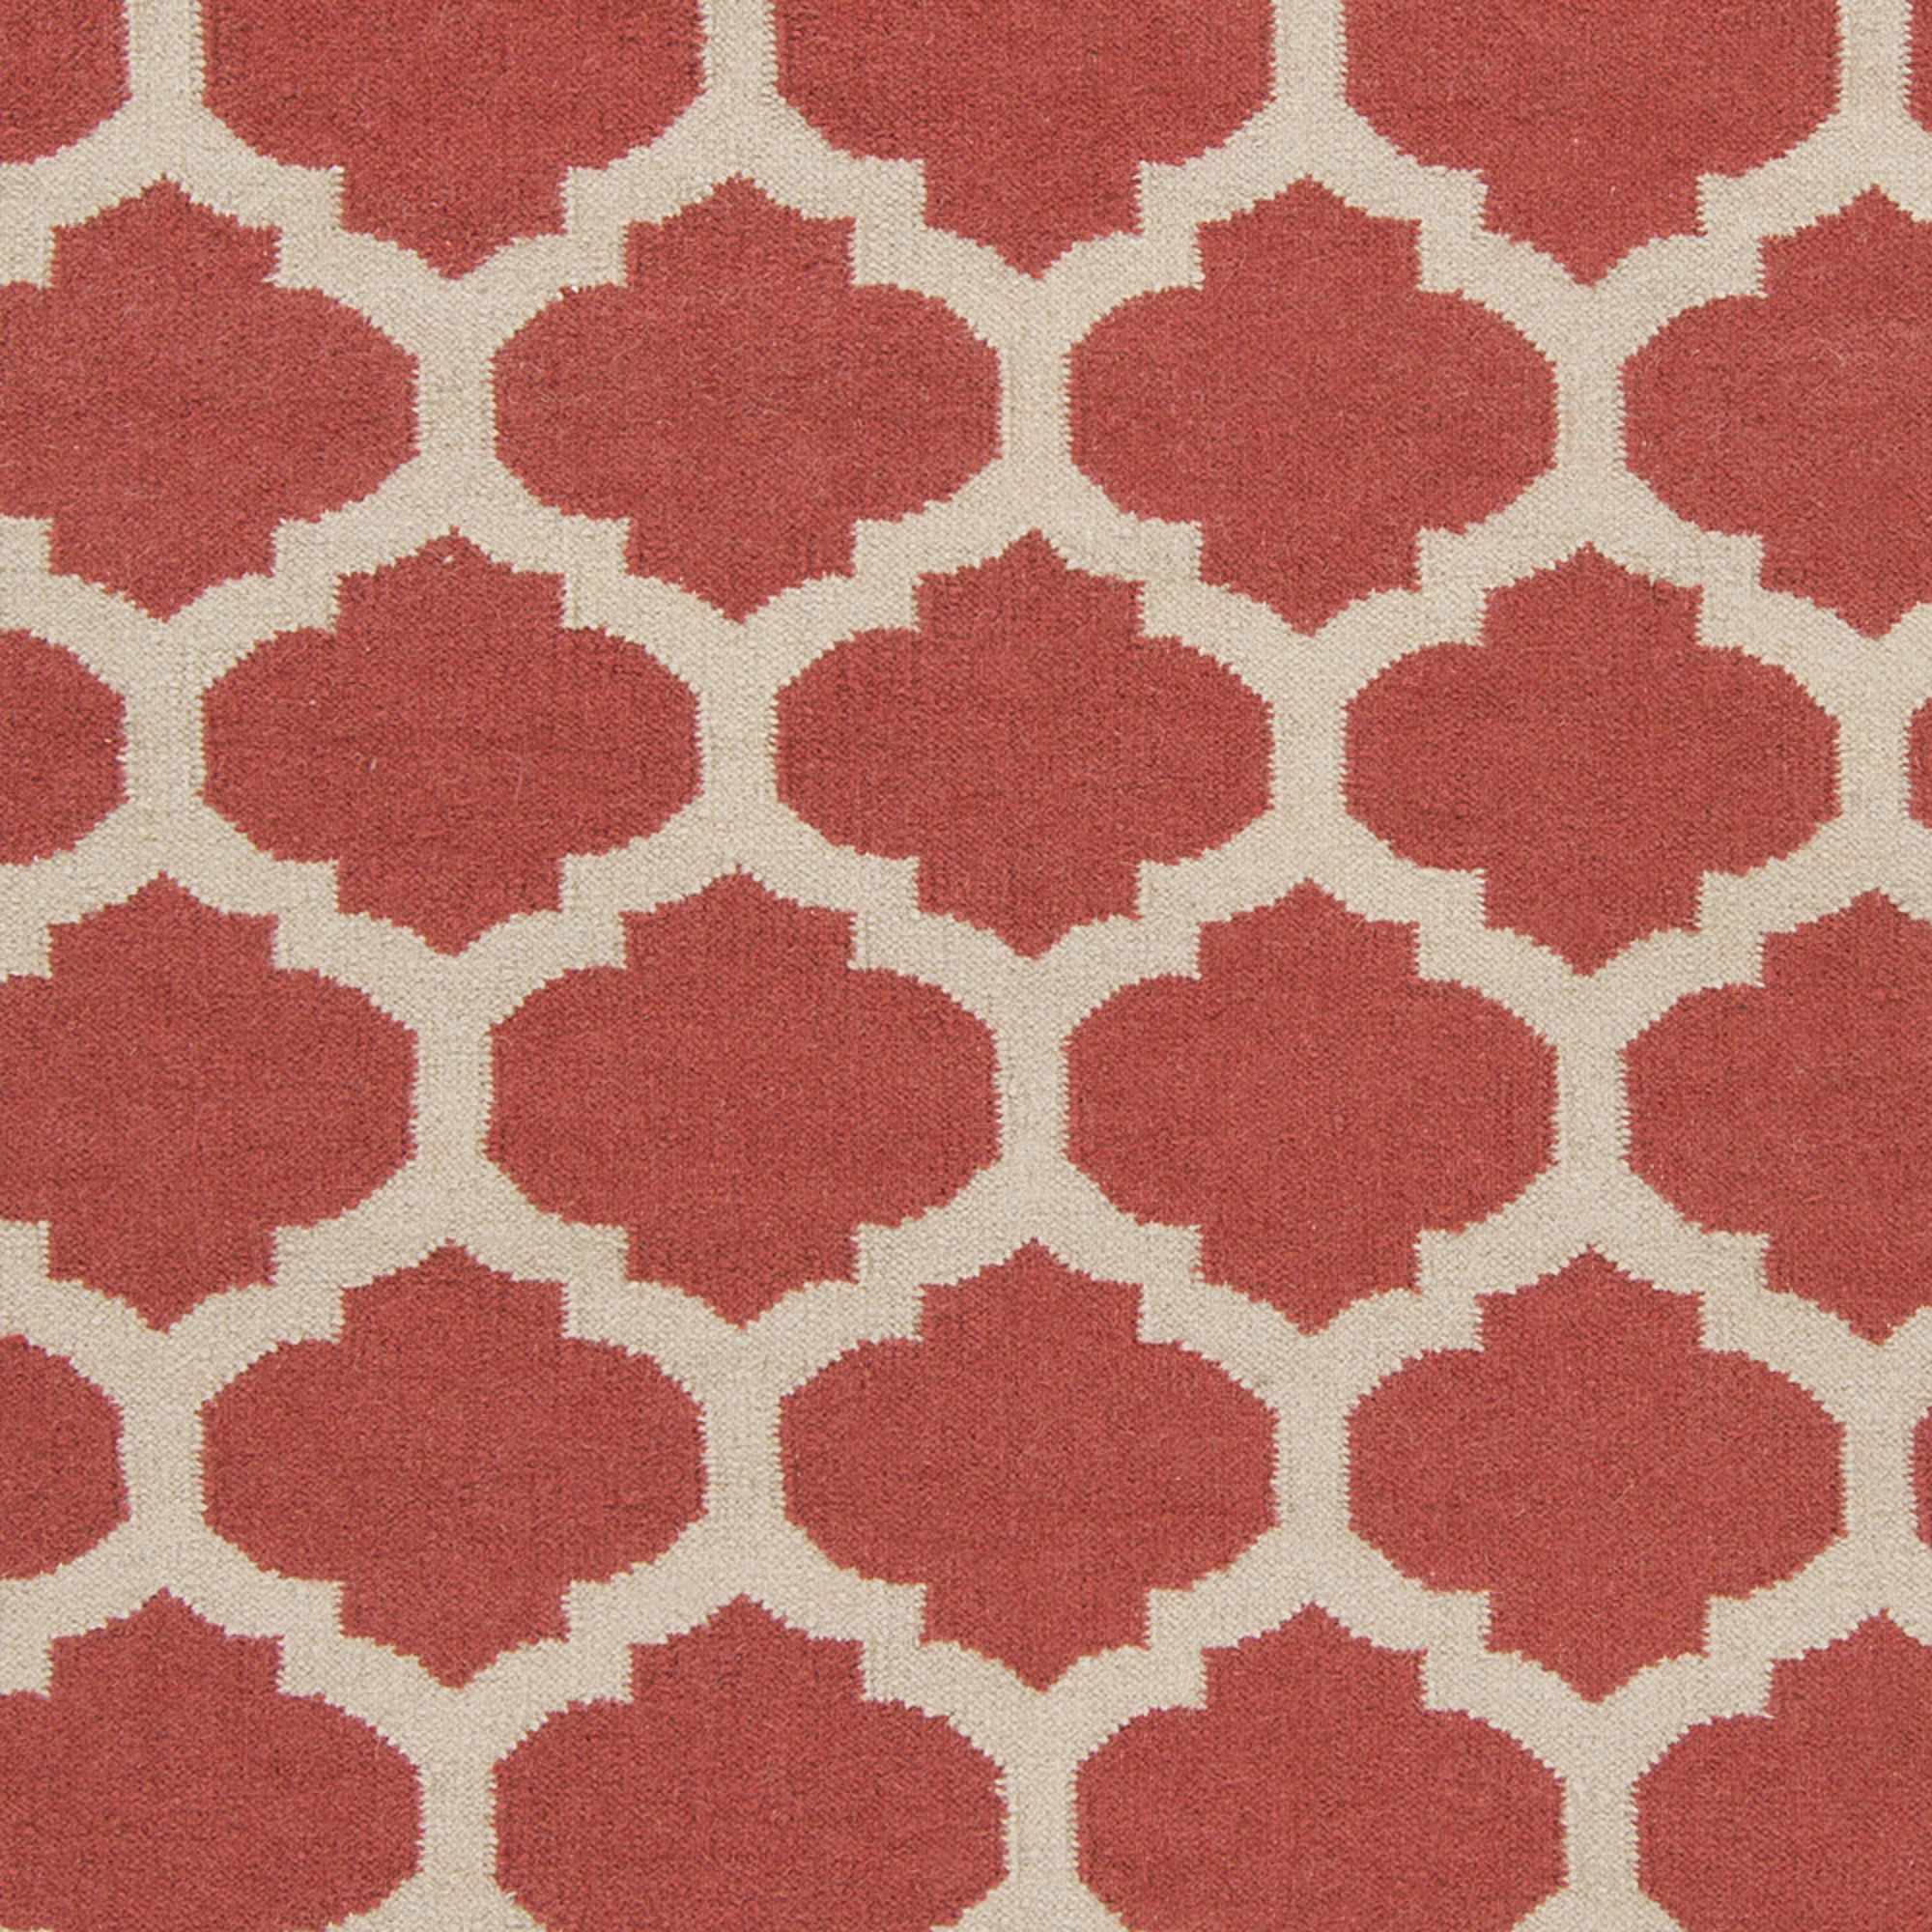 Art of Knot Large Lattice Hand Woven Flatweave Wool Area Rug, Coral